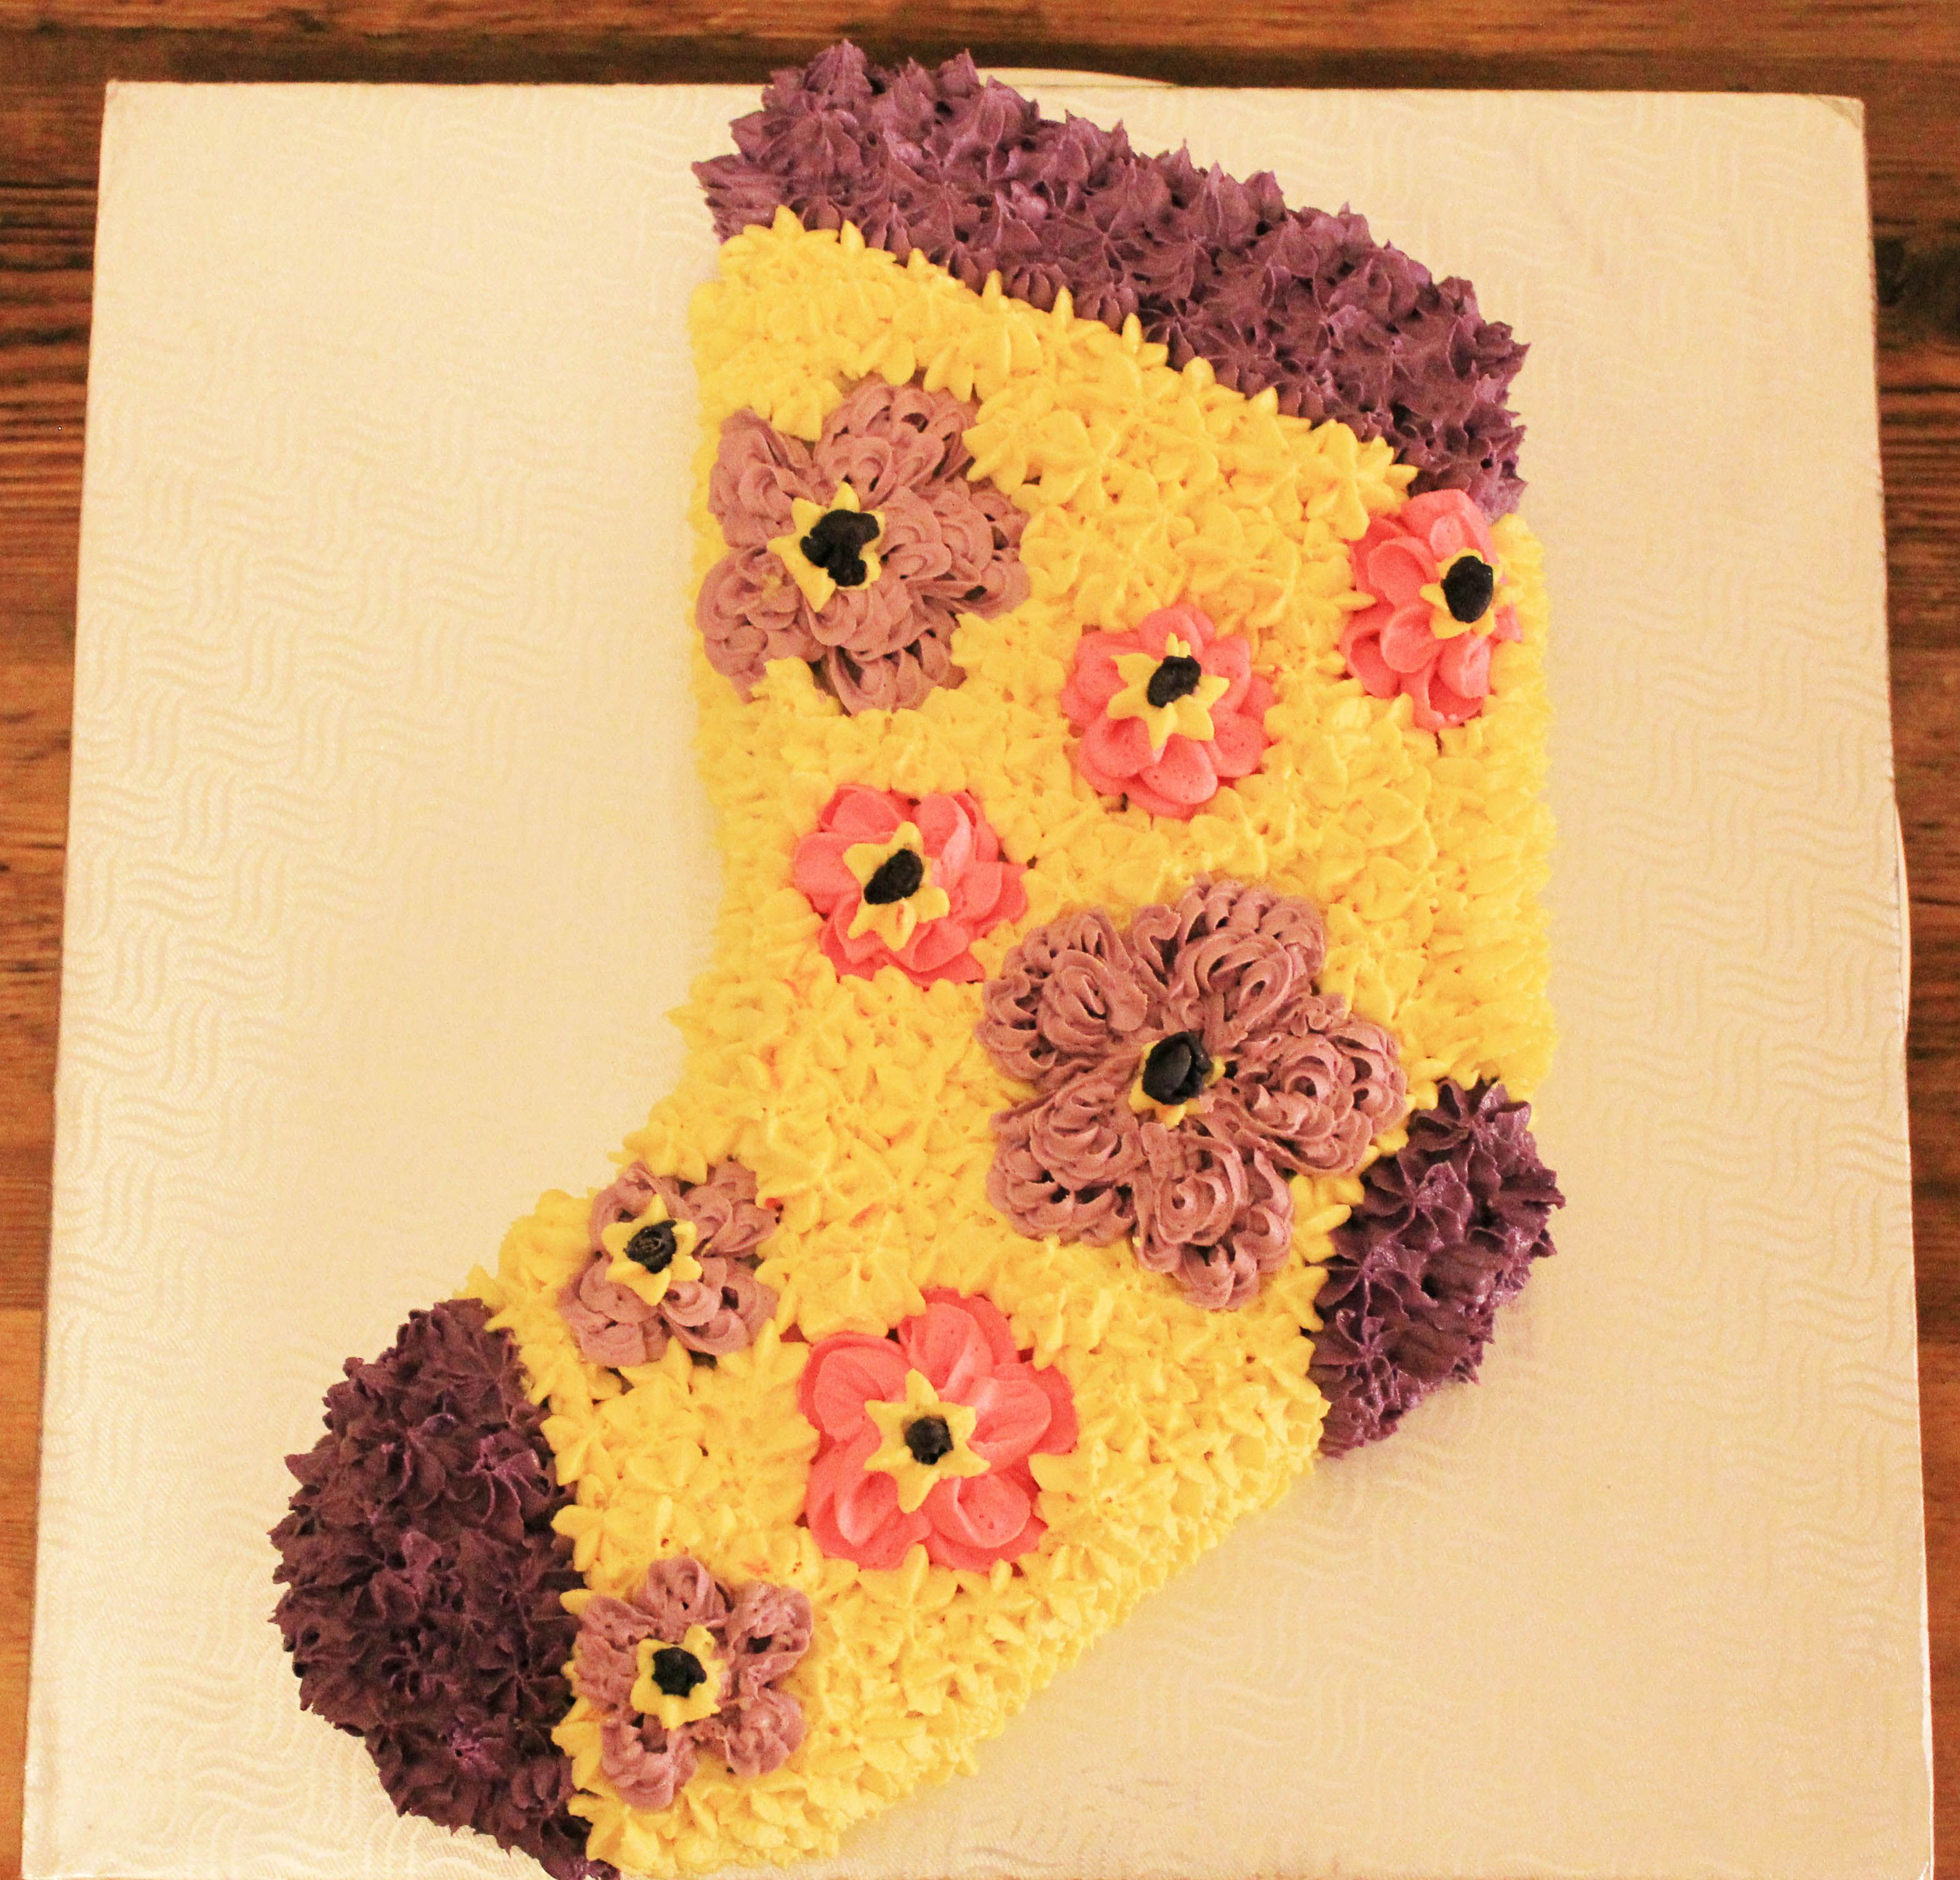 Sock Party Cake